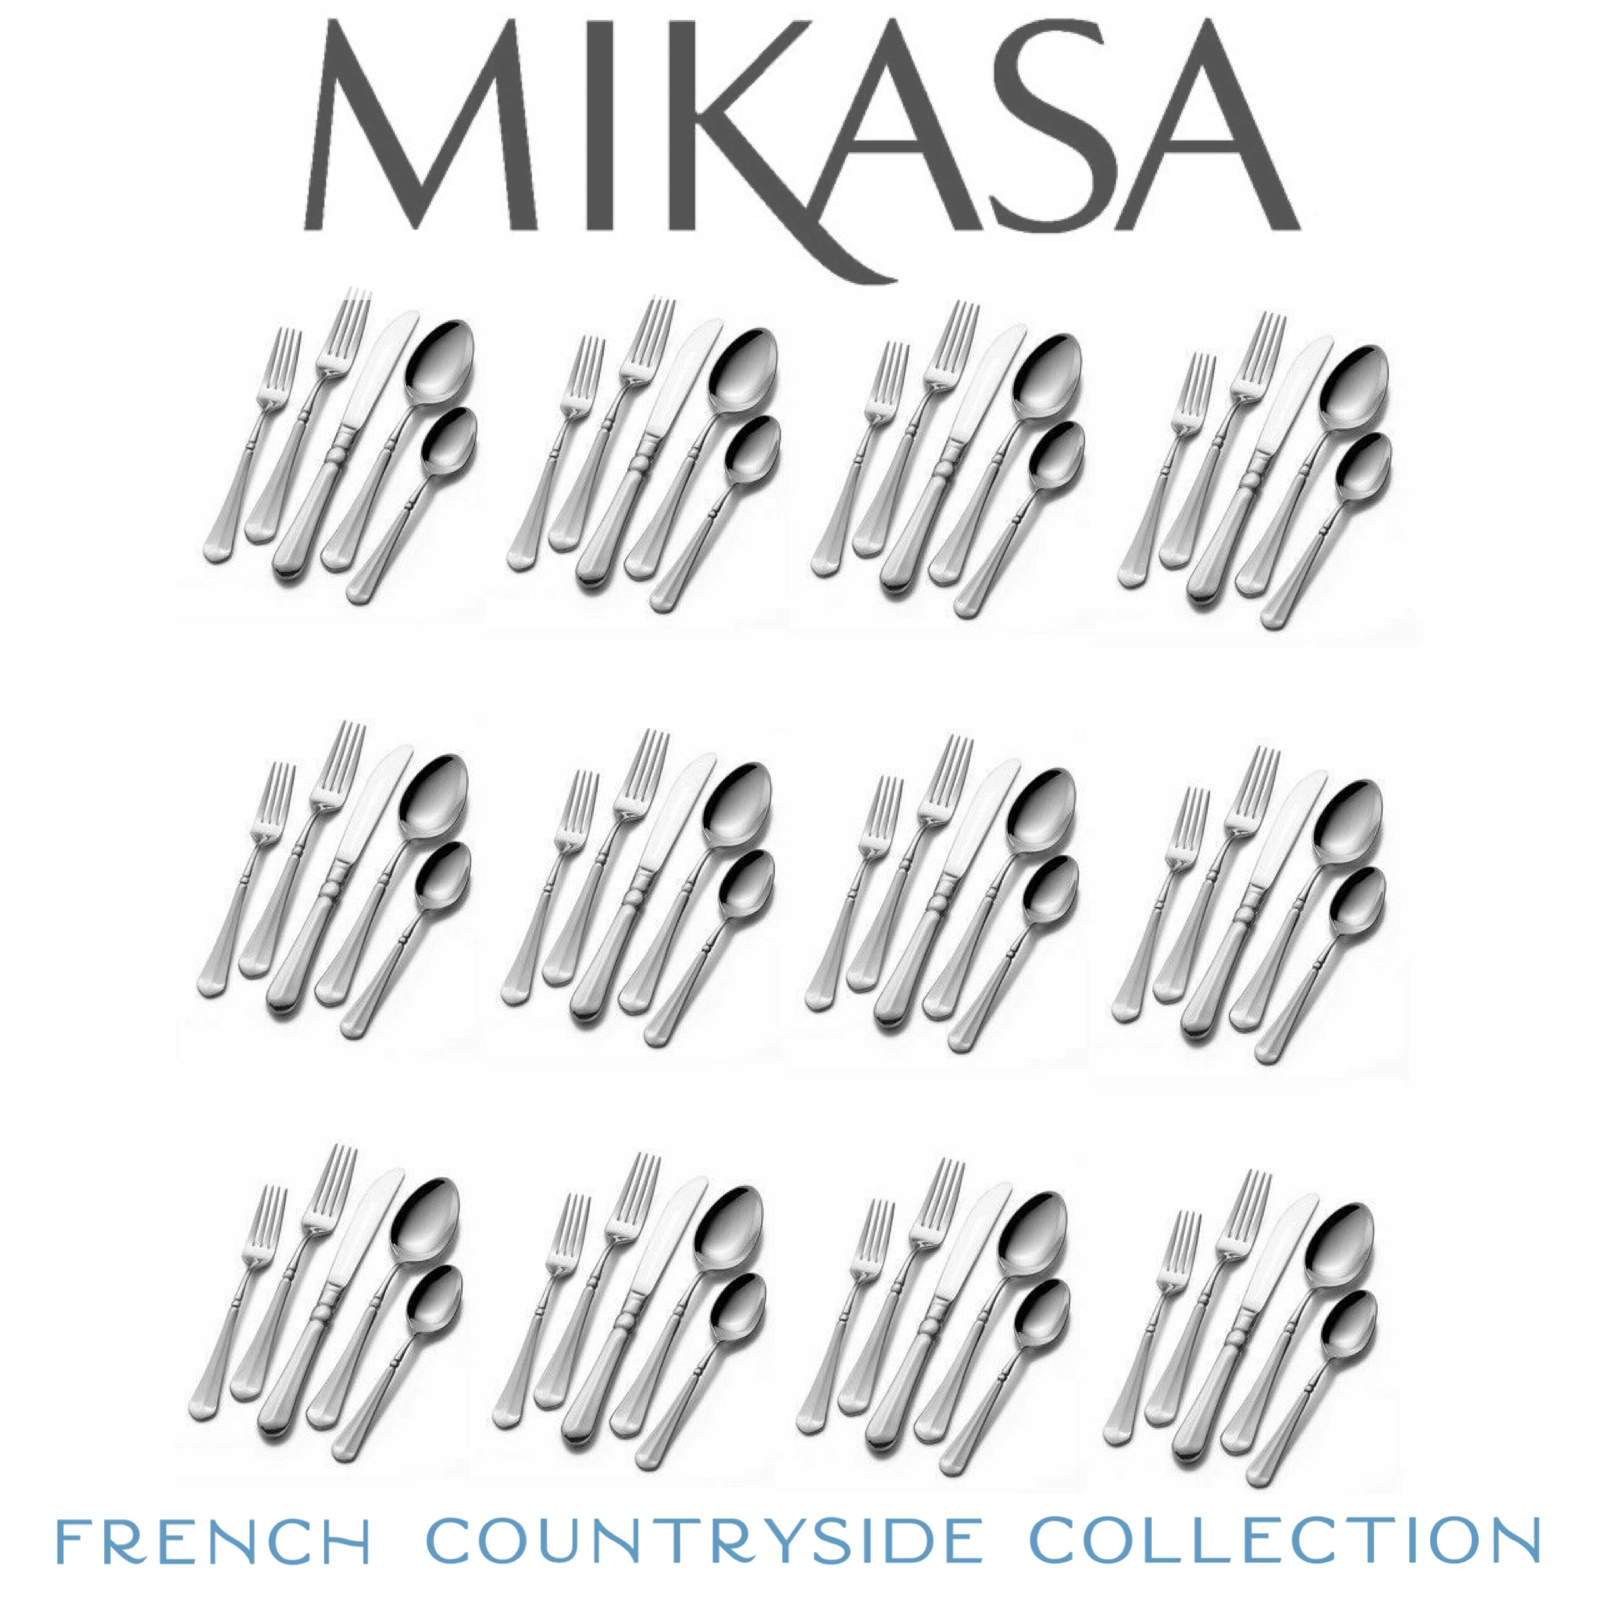 Mikasa 5112172 French Countryside 65-Piece 18/10 Stainless S